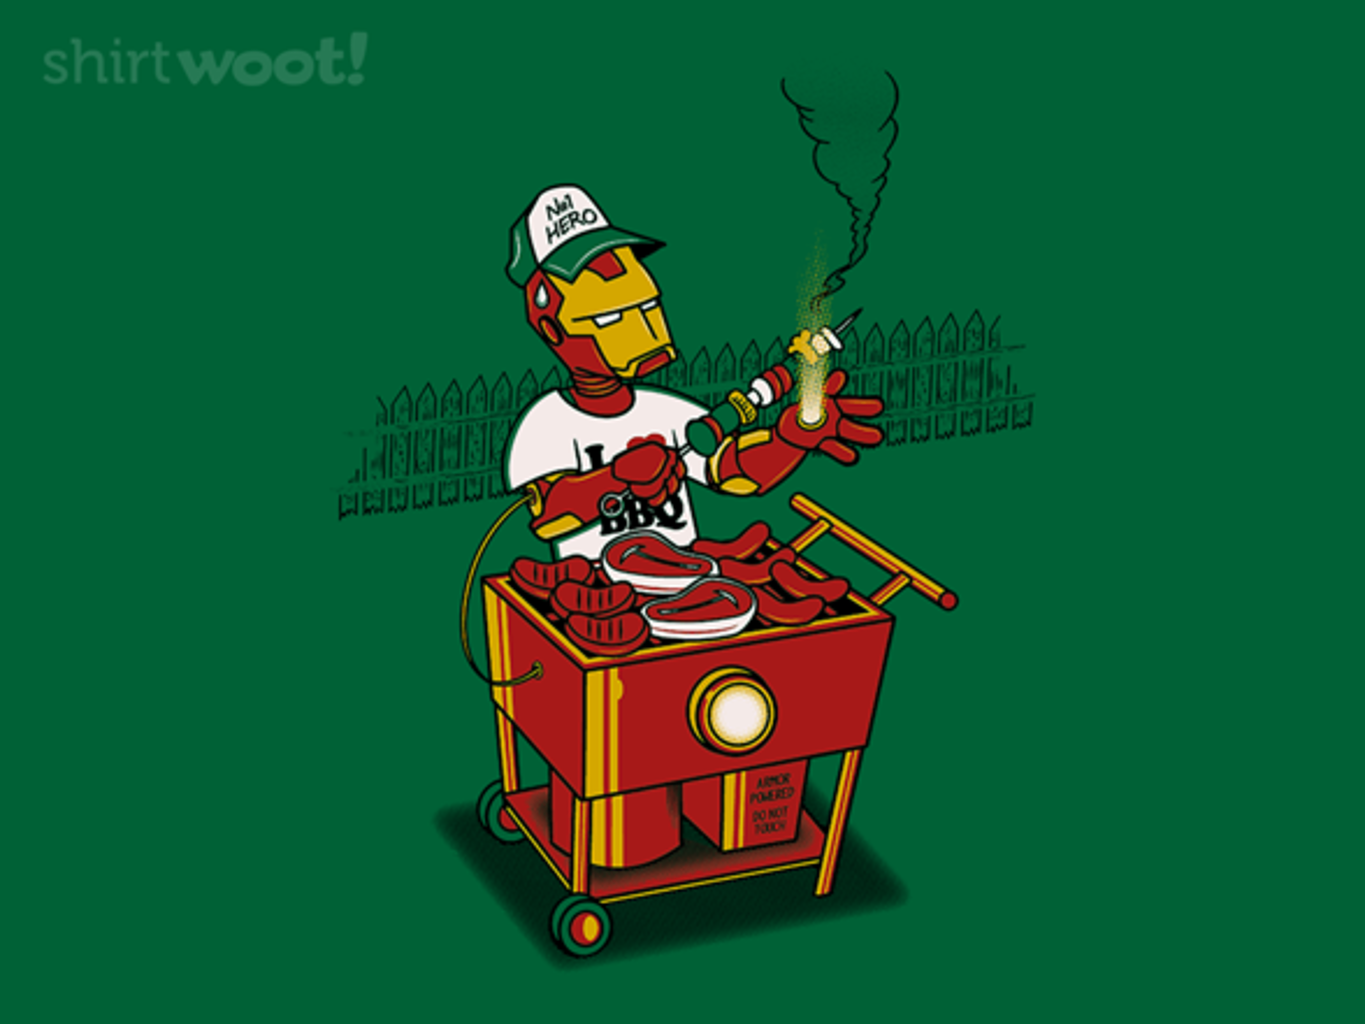 Woot!: Super Barbecue